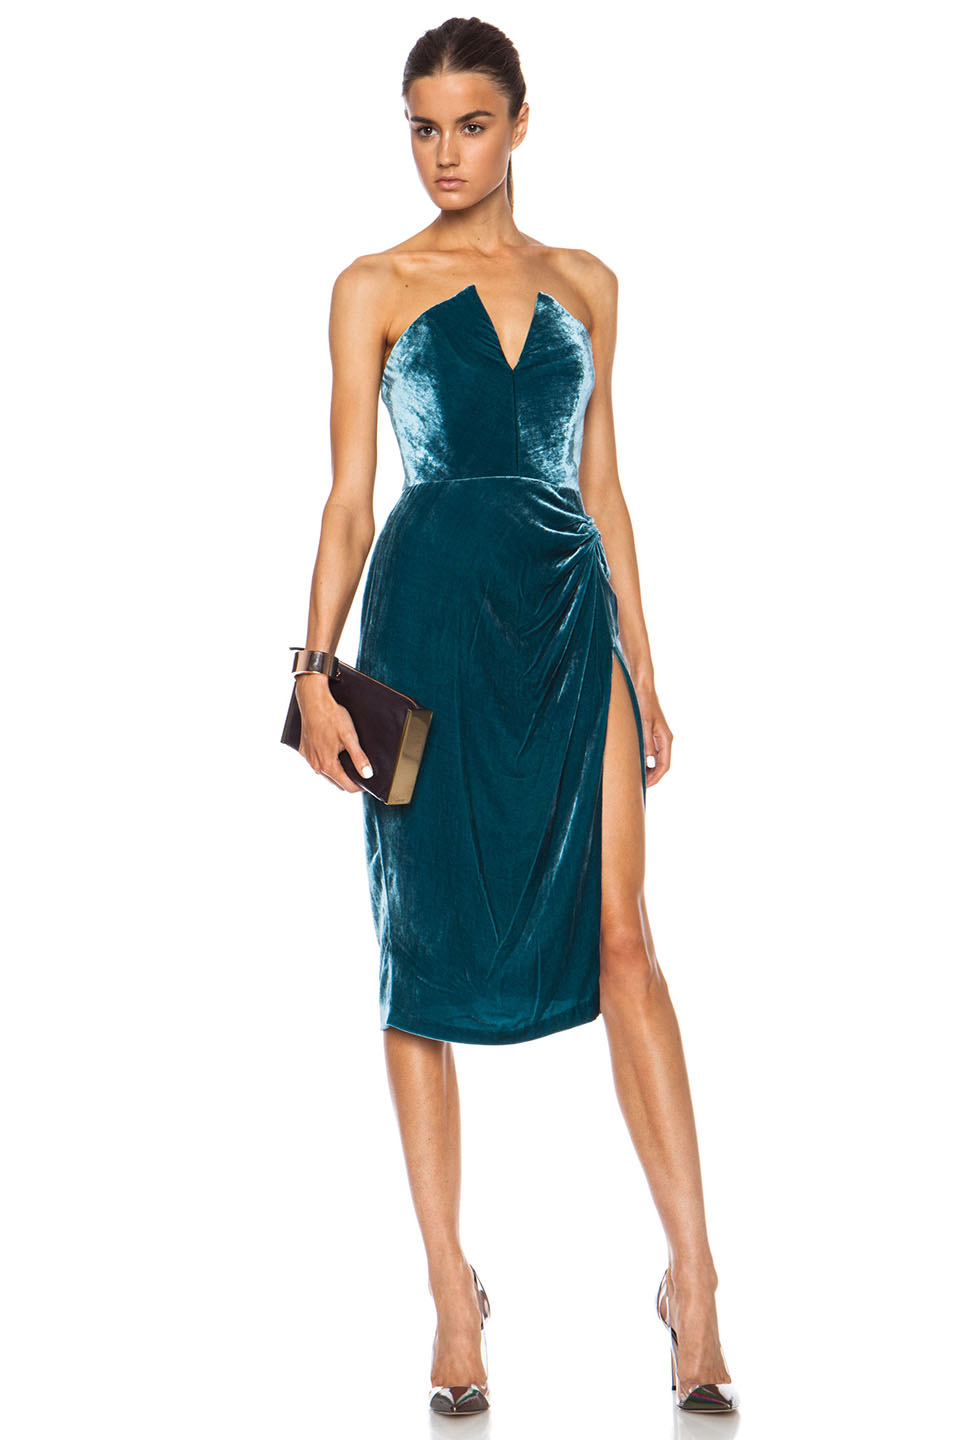 Cushnie et Ochs | Velvet Dress in Teal